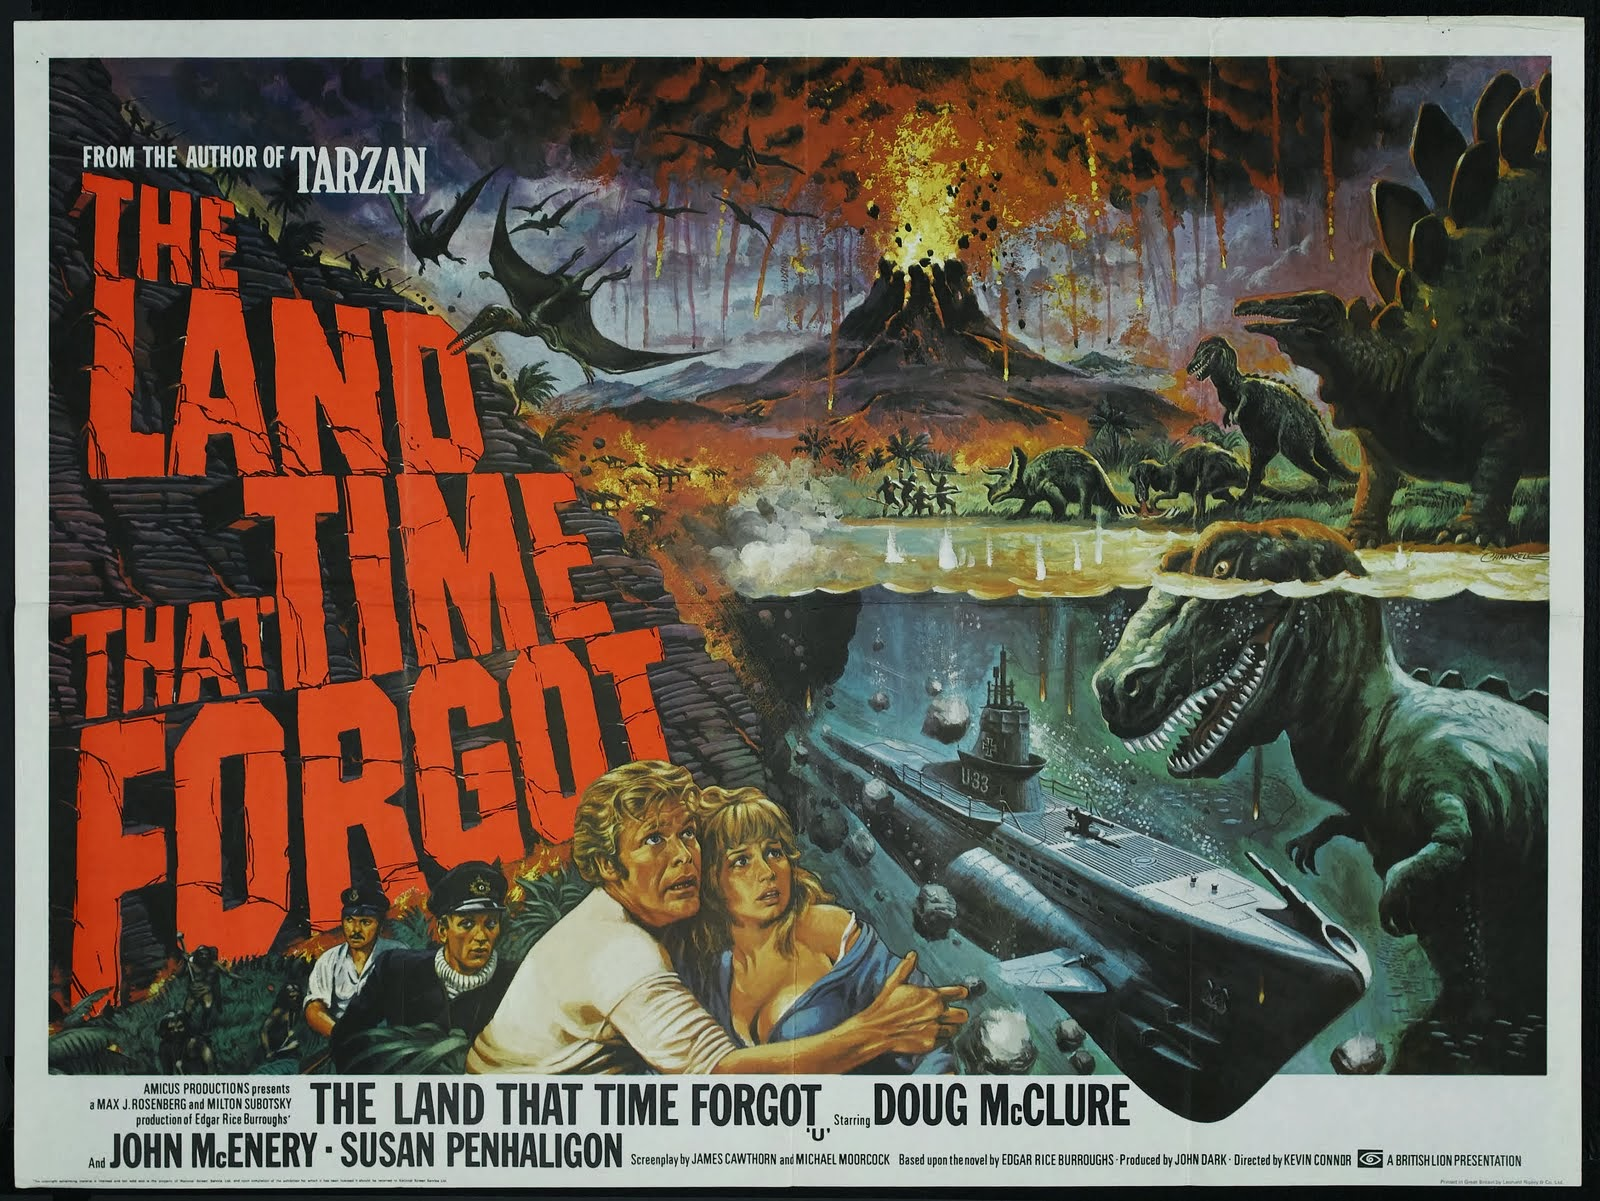 http://wrongsideoftheart.com/2009/03/the-land-that-time-forgot-1975-uk-usa/